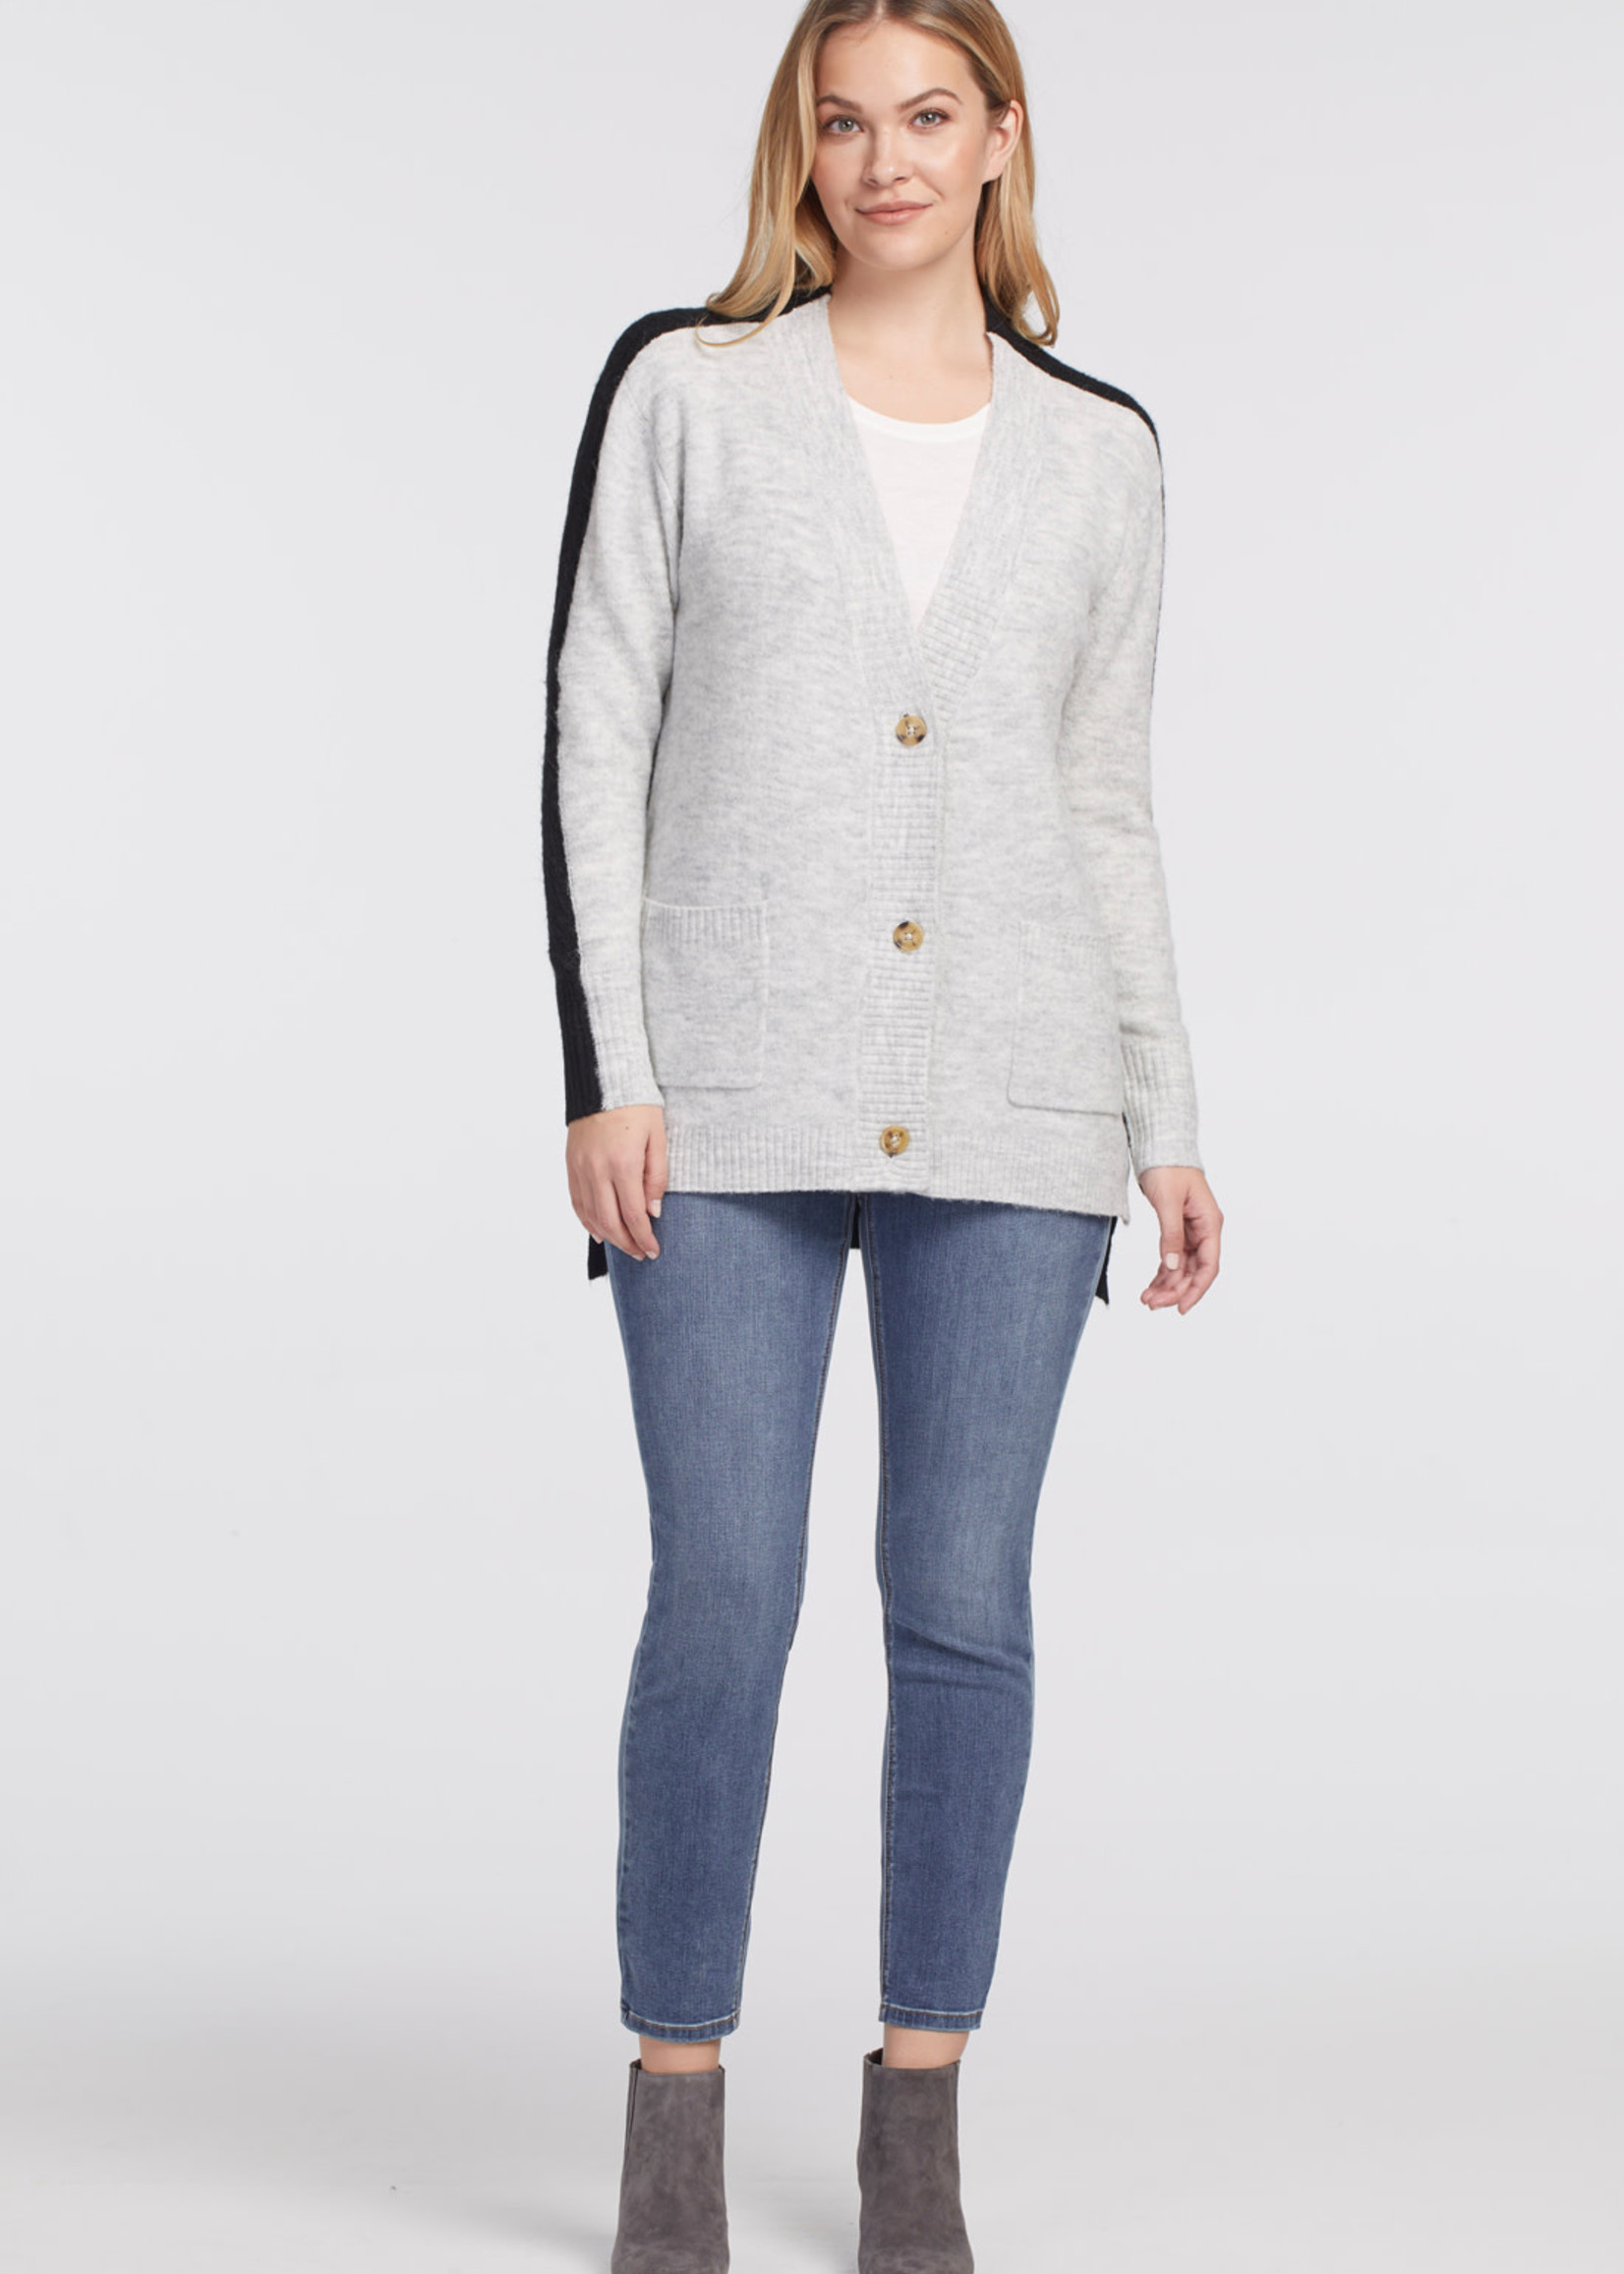 Tribal L/S Button Front Sweater Cardigan 46790/3166